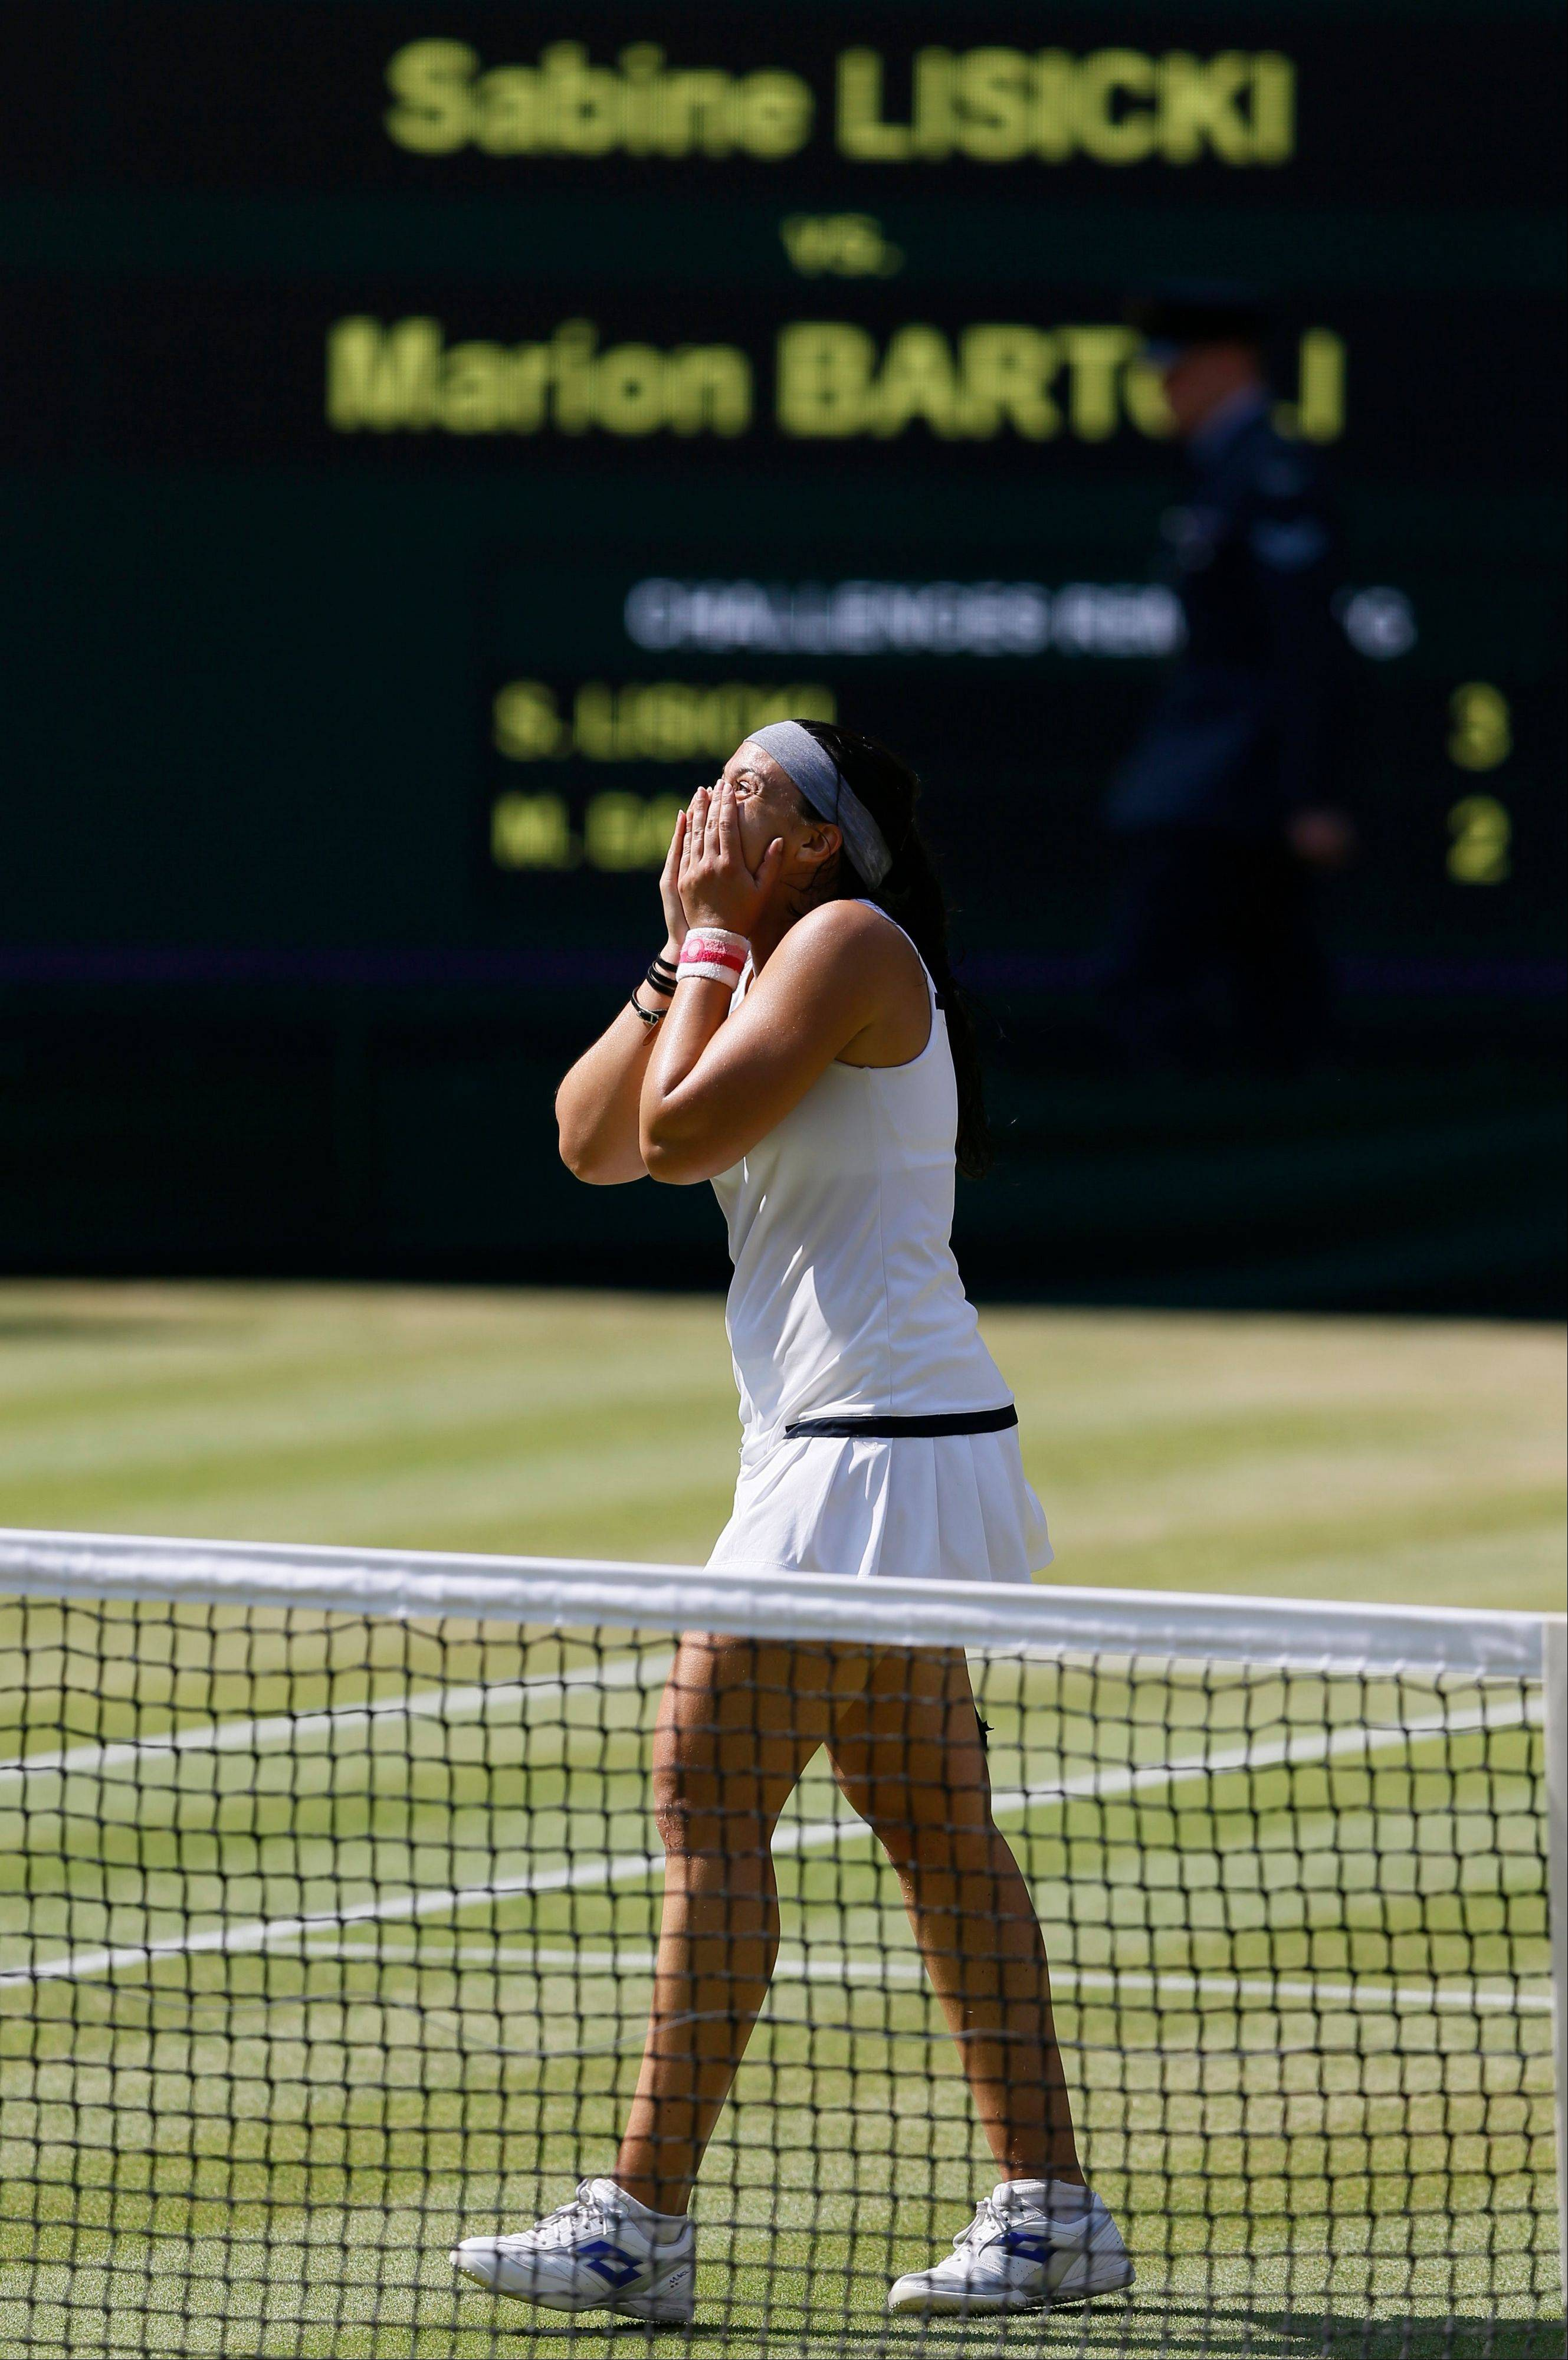 Marion Bartoli of France reacts as she wins the Women�s singles final match against Sabine Lisicki of Germany at the All England Lawn Tennis Championships in Wimbledon, London, Saturday, July 6.